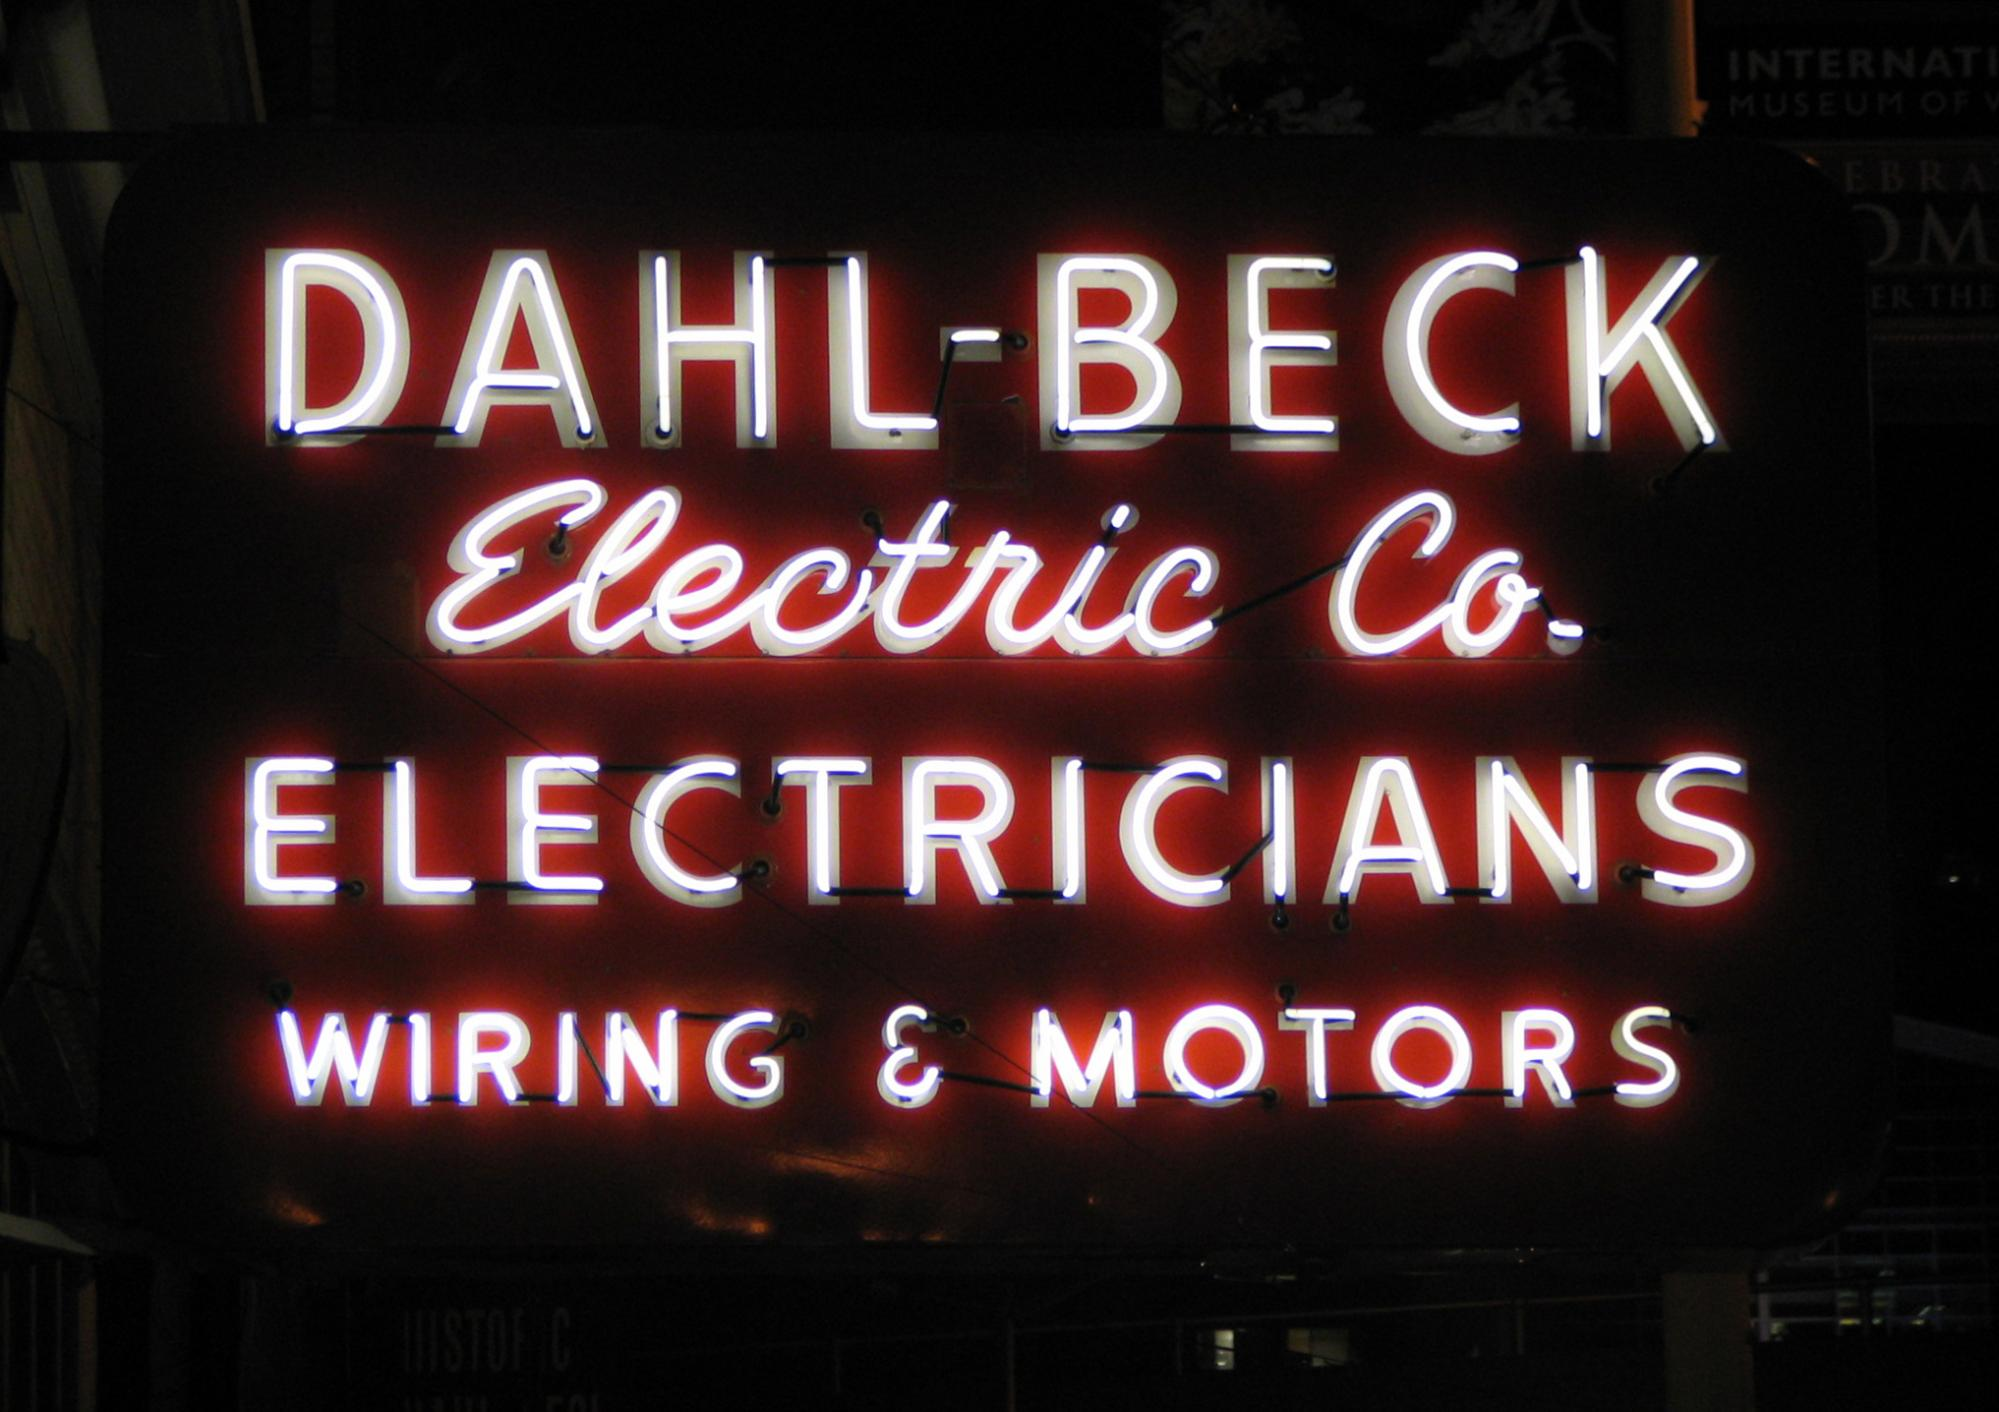 Dahl-Beck Electric Co sign